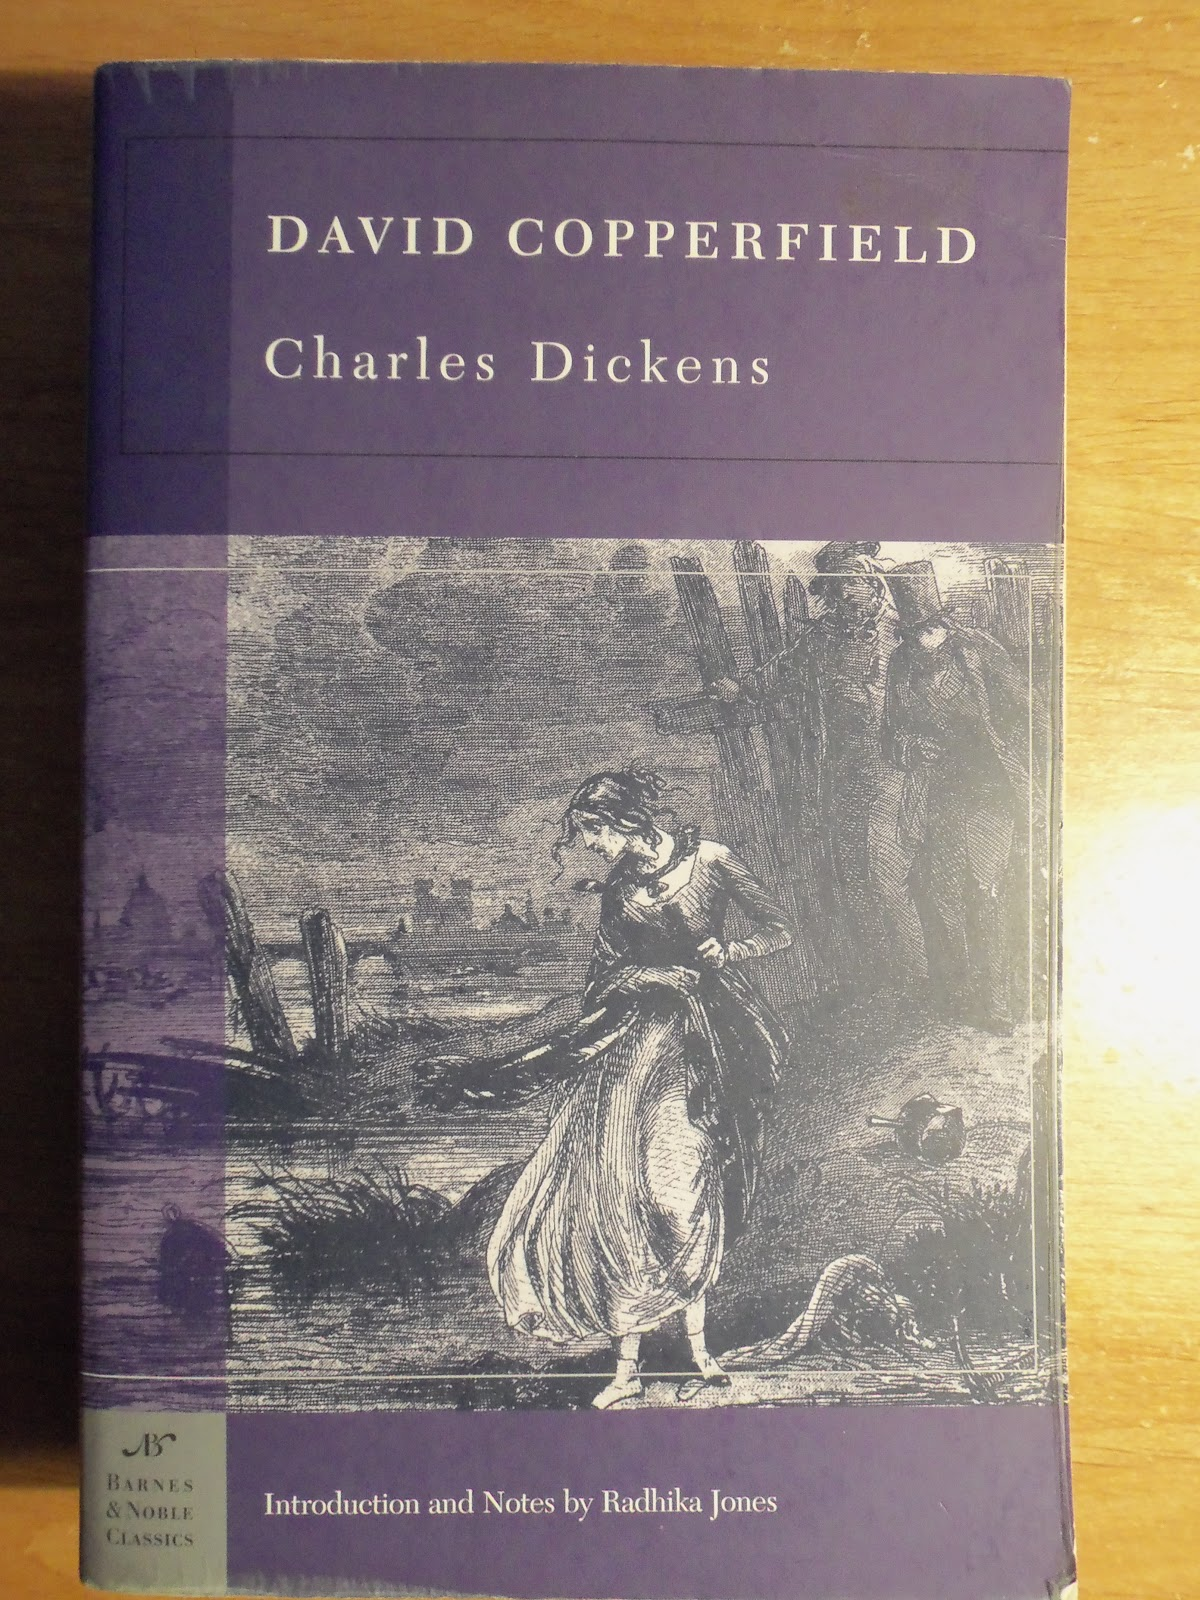 door stop novels door stop david copperfield by charles dickens door stop david copperfield by charles dickens